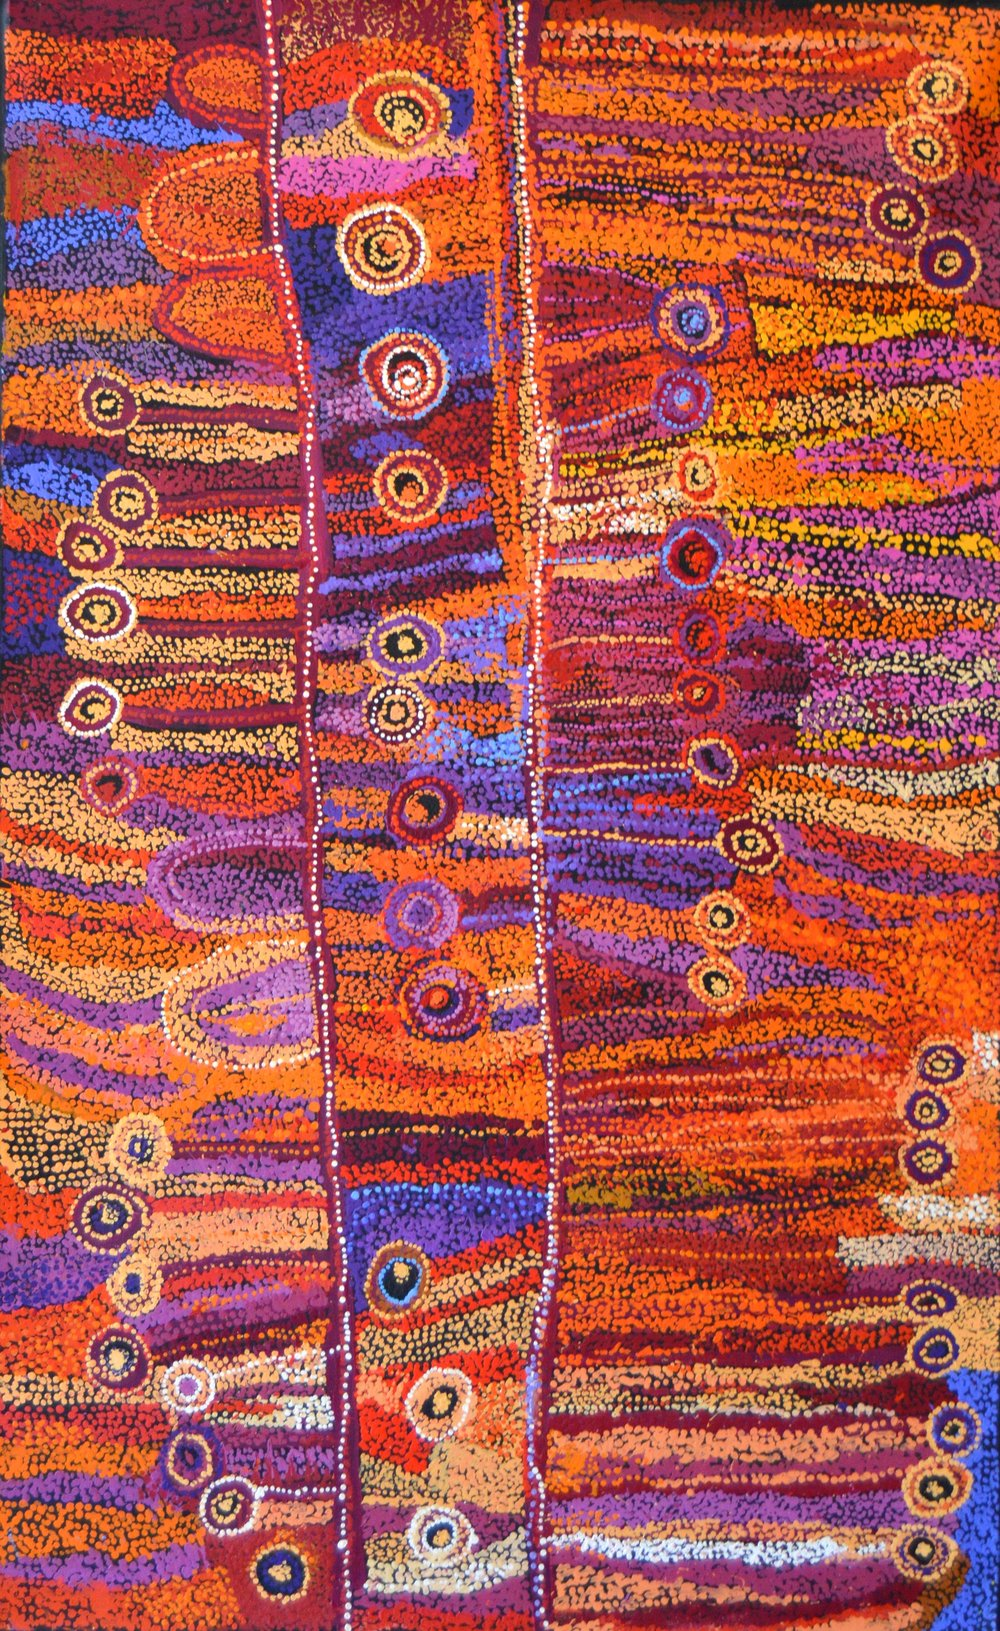 "Wawiriya Burton  Ngayuku ngura- My Country   Acrylic on Belgian linen 1525 x 1980 mm (60 x 78"") Tjala Arts Catalog #485-15   Price Available upon Request"